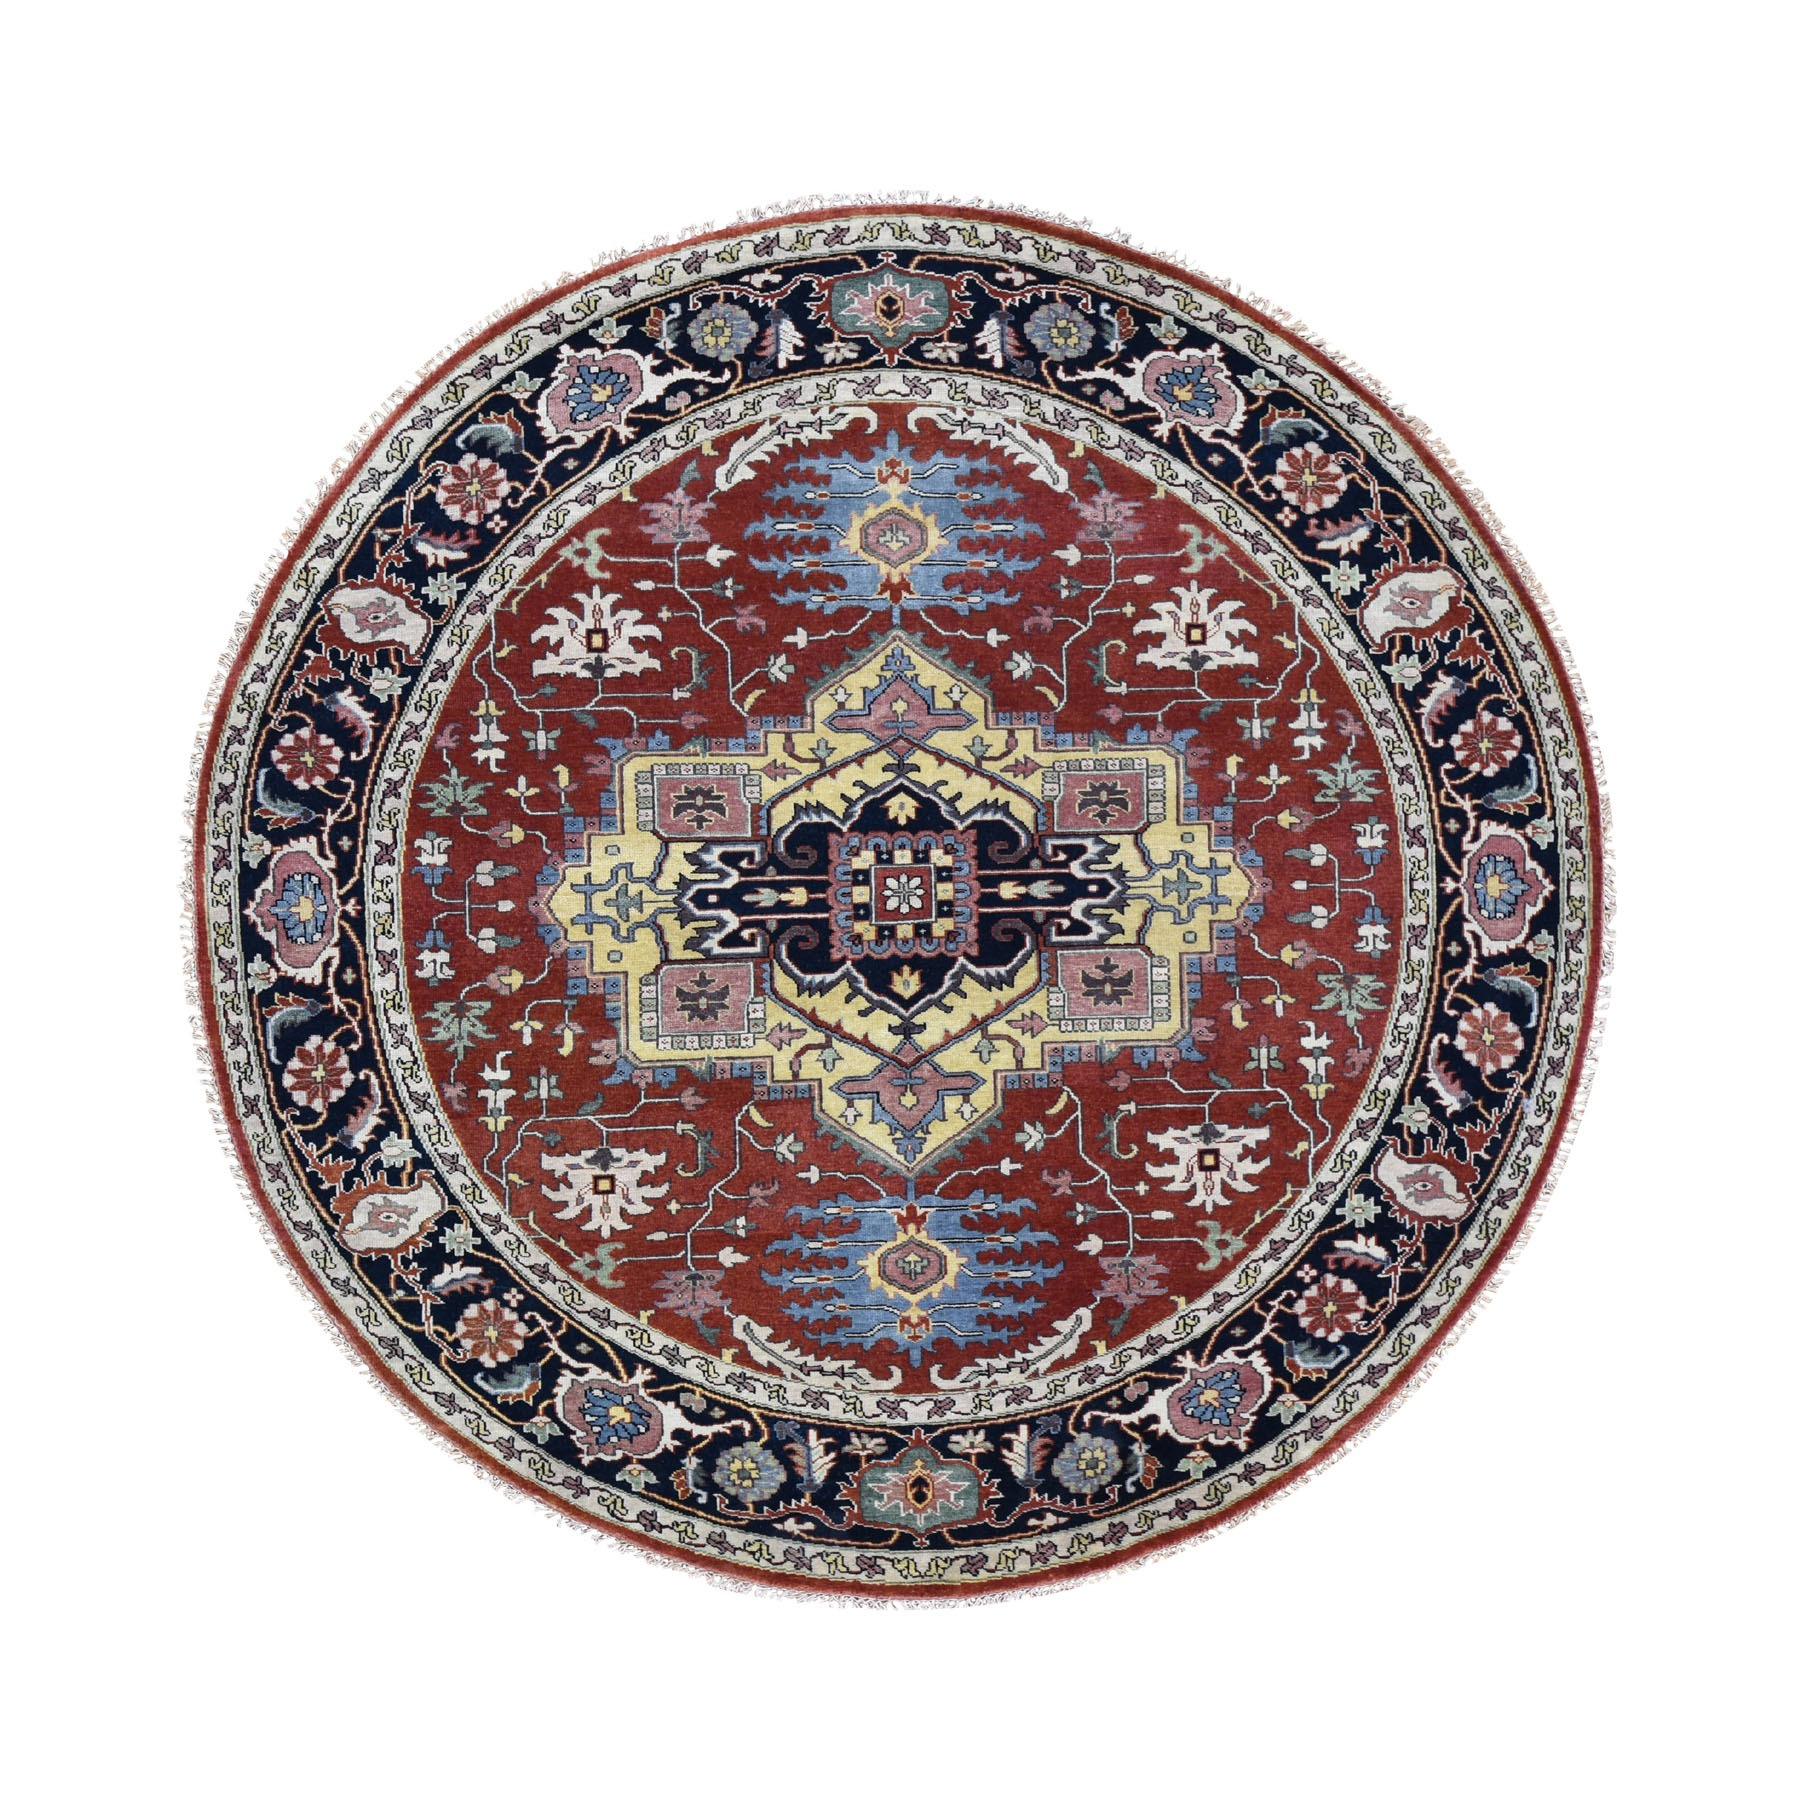 8'x8' Round Red Heriz Revival Pure Wool Hand Woven Oriental Rug